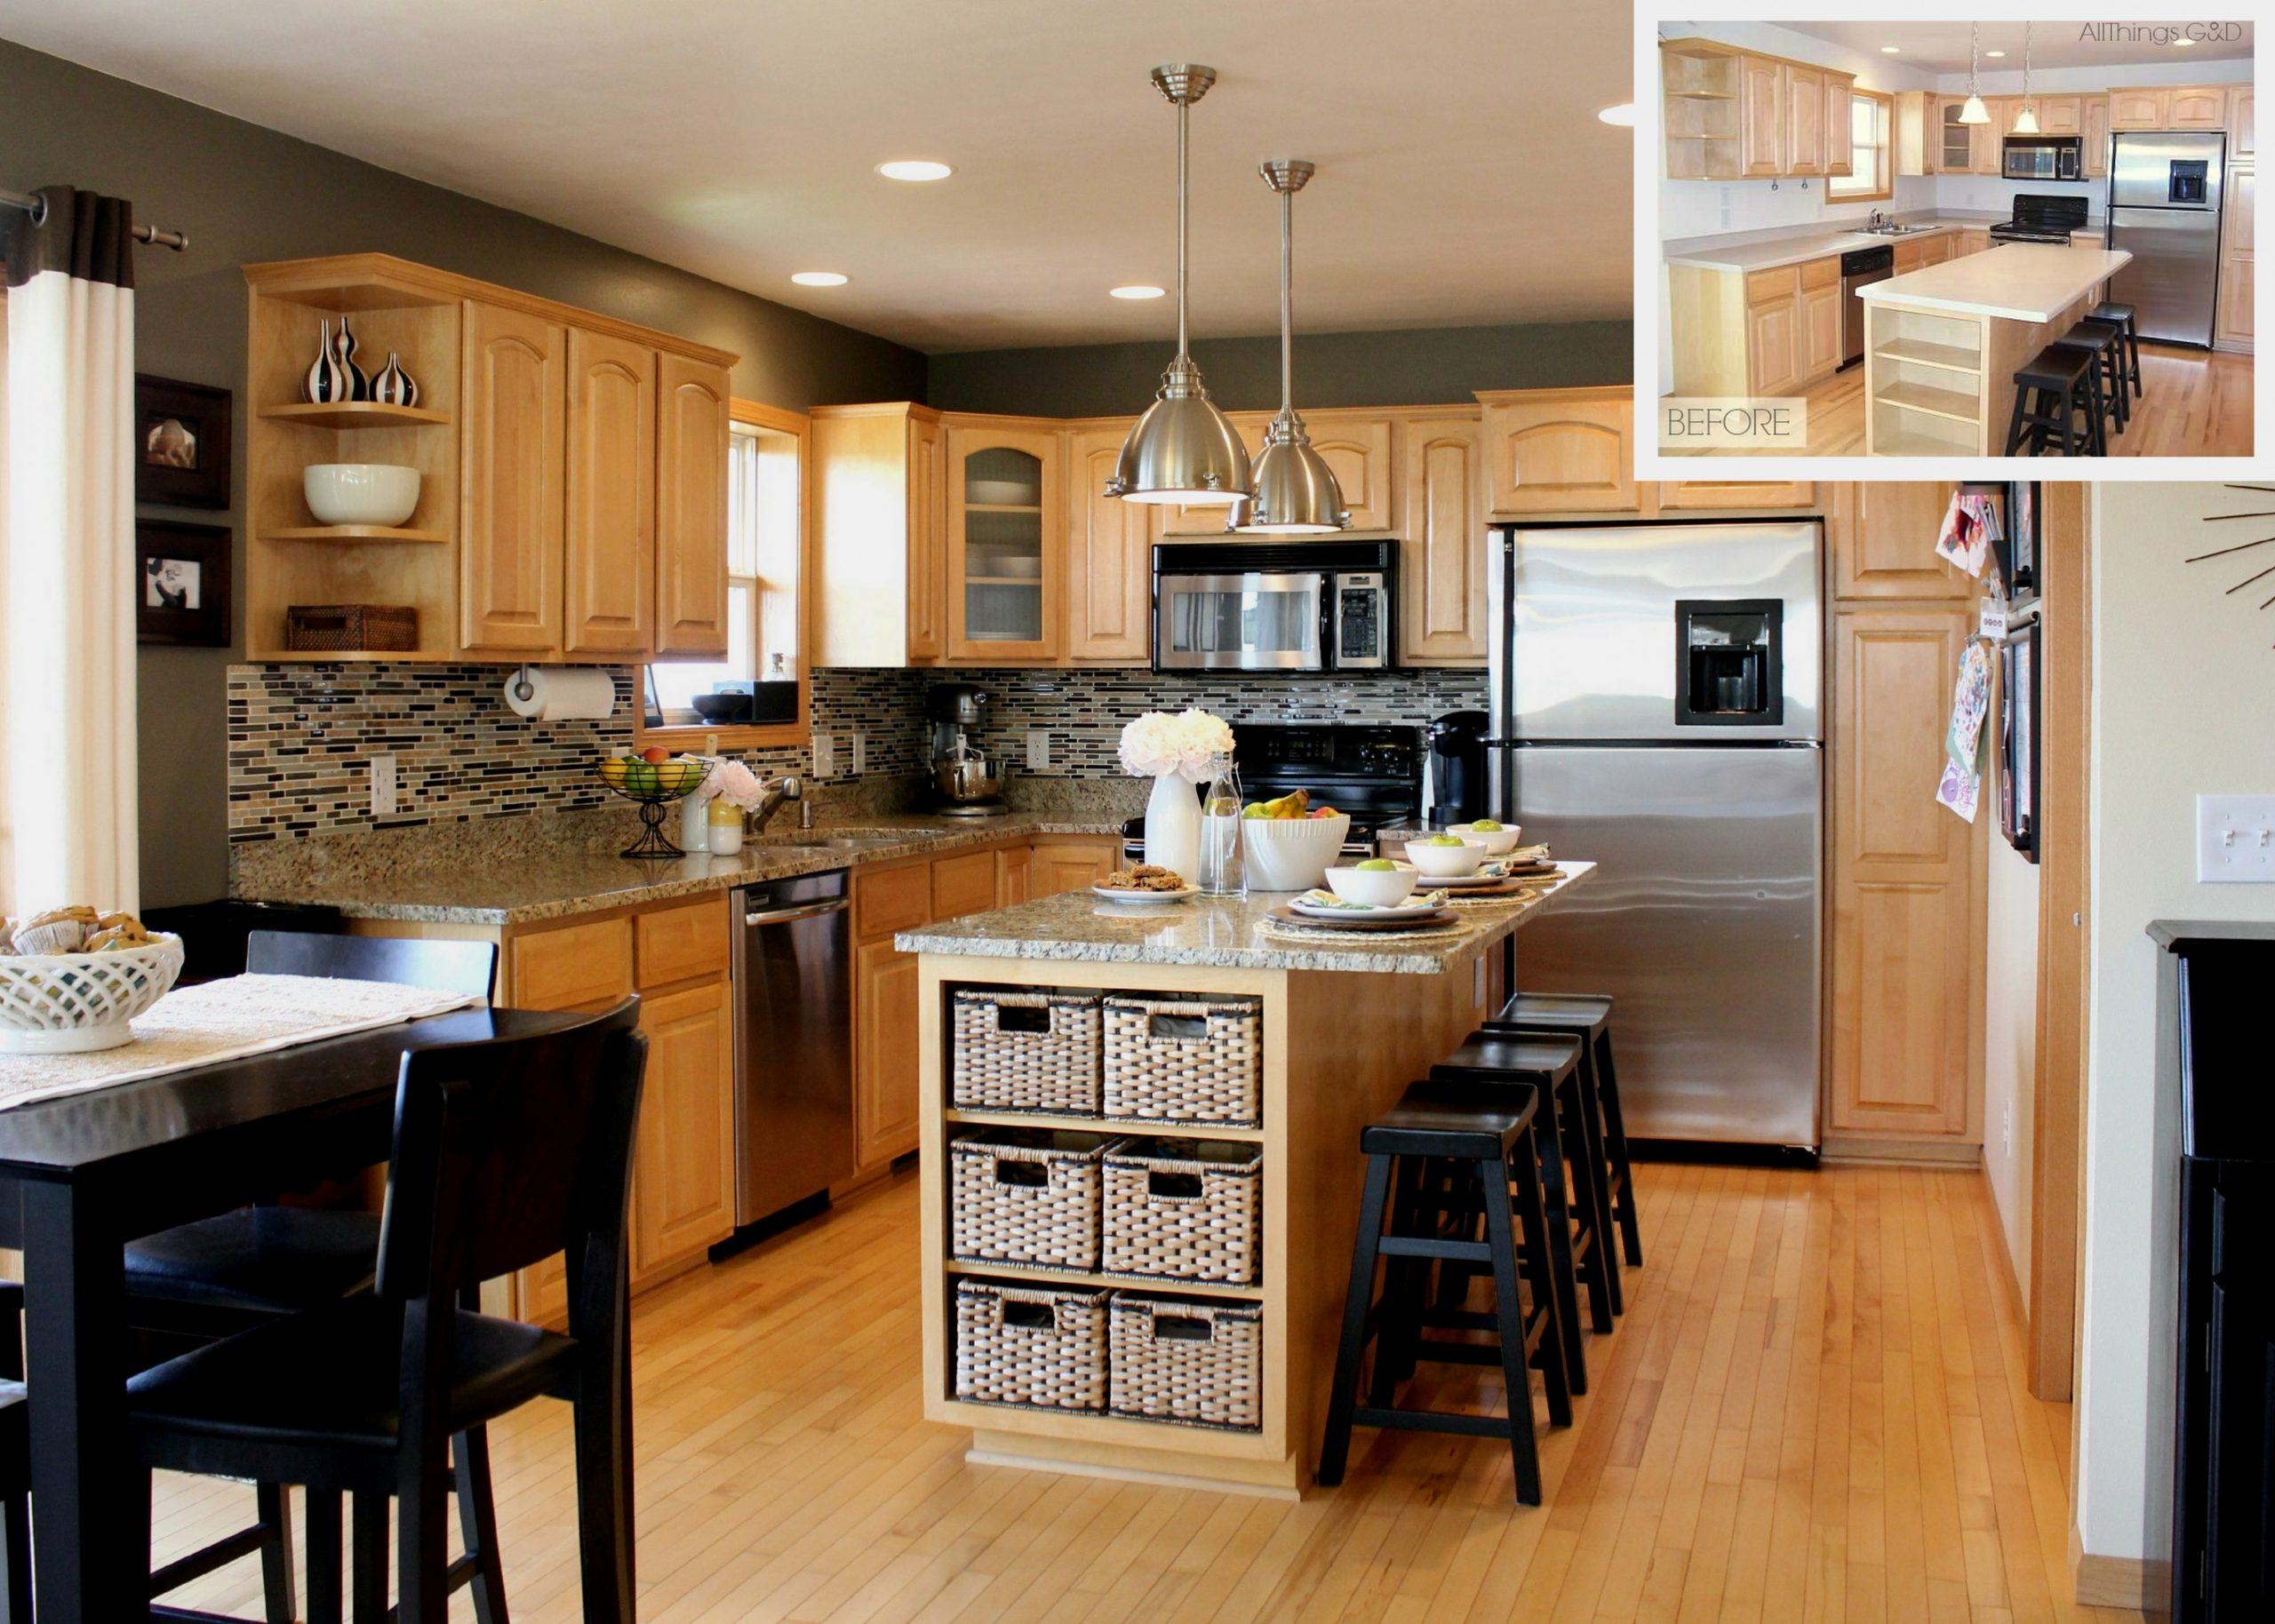 Going Gray - All Things G&D - What Color To Paint Kitchen Walls With Maple Cabinets